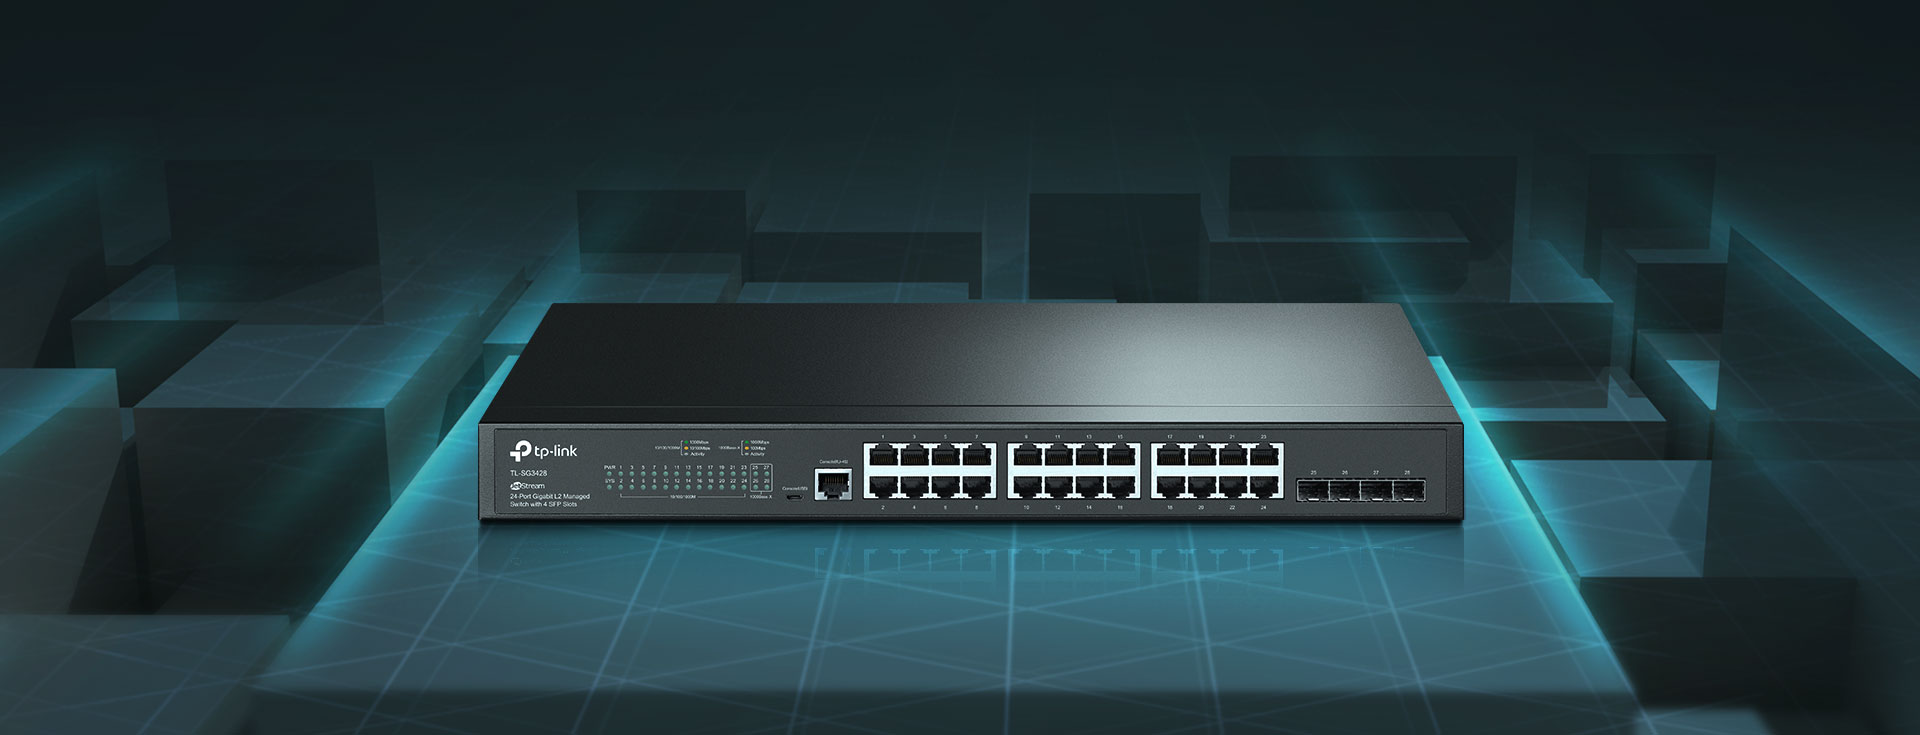 Switch TP-LINK TL-SG3428 1